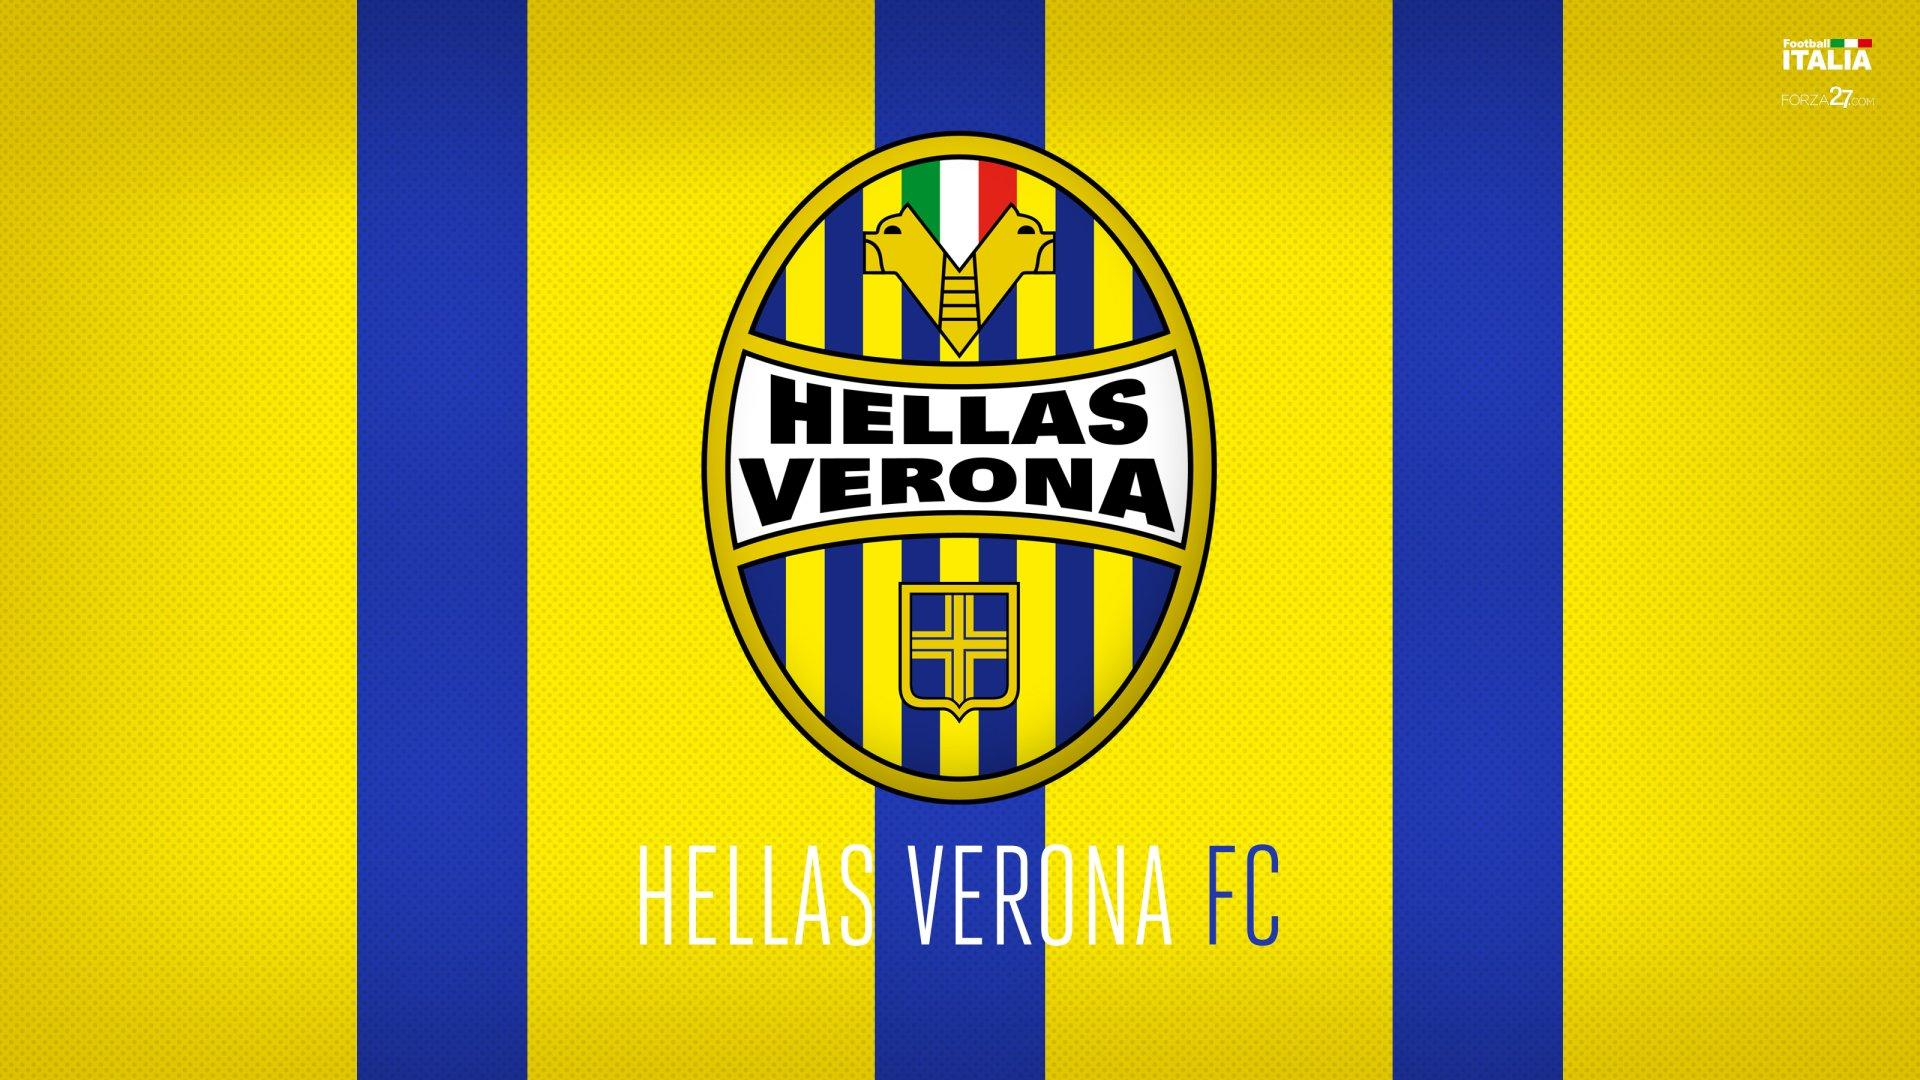 1 Hellas Verona F.C. HD Wallpapers | Background Images - Wallpaper Abyss